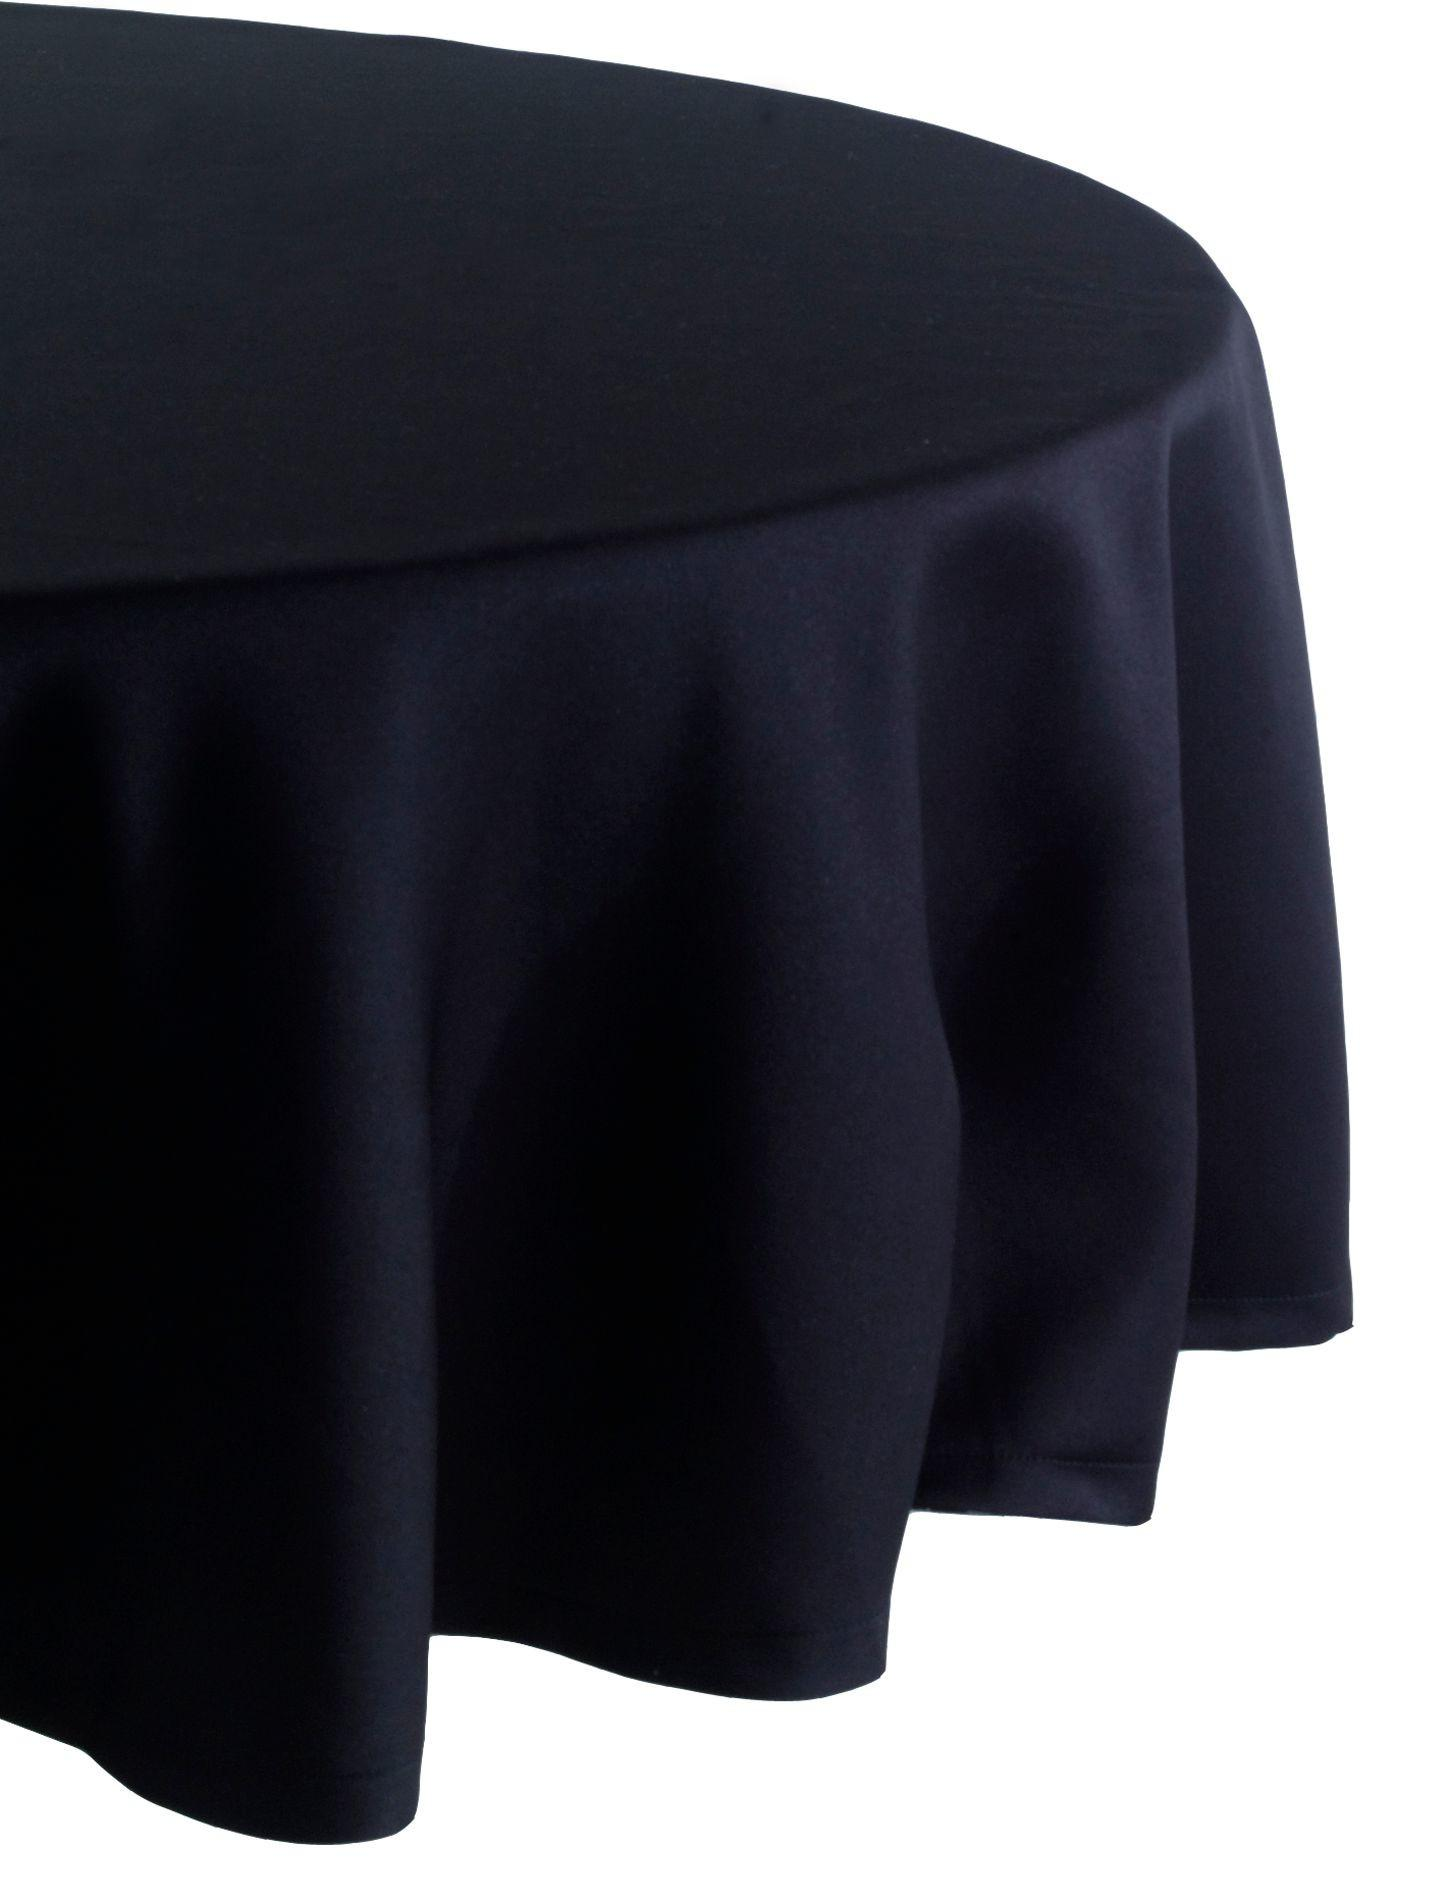 Essential Home 70in Round Black Tablecloth Dining